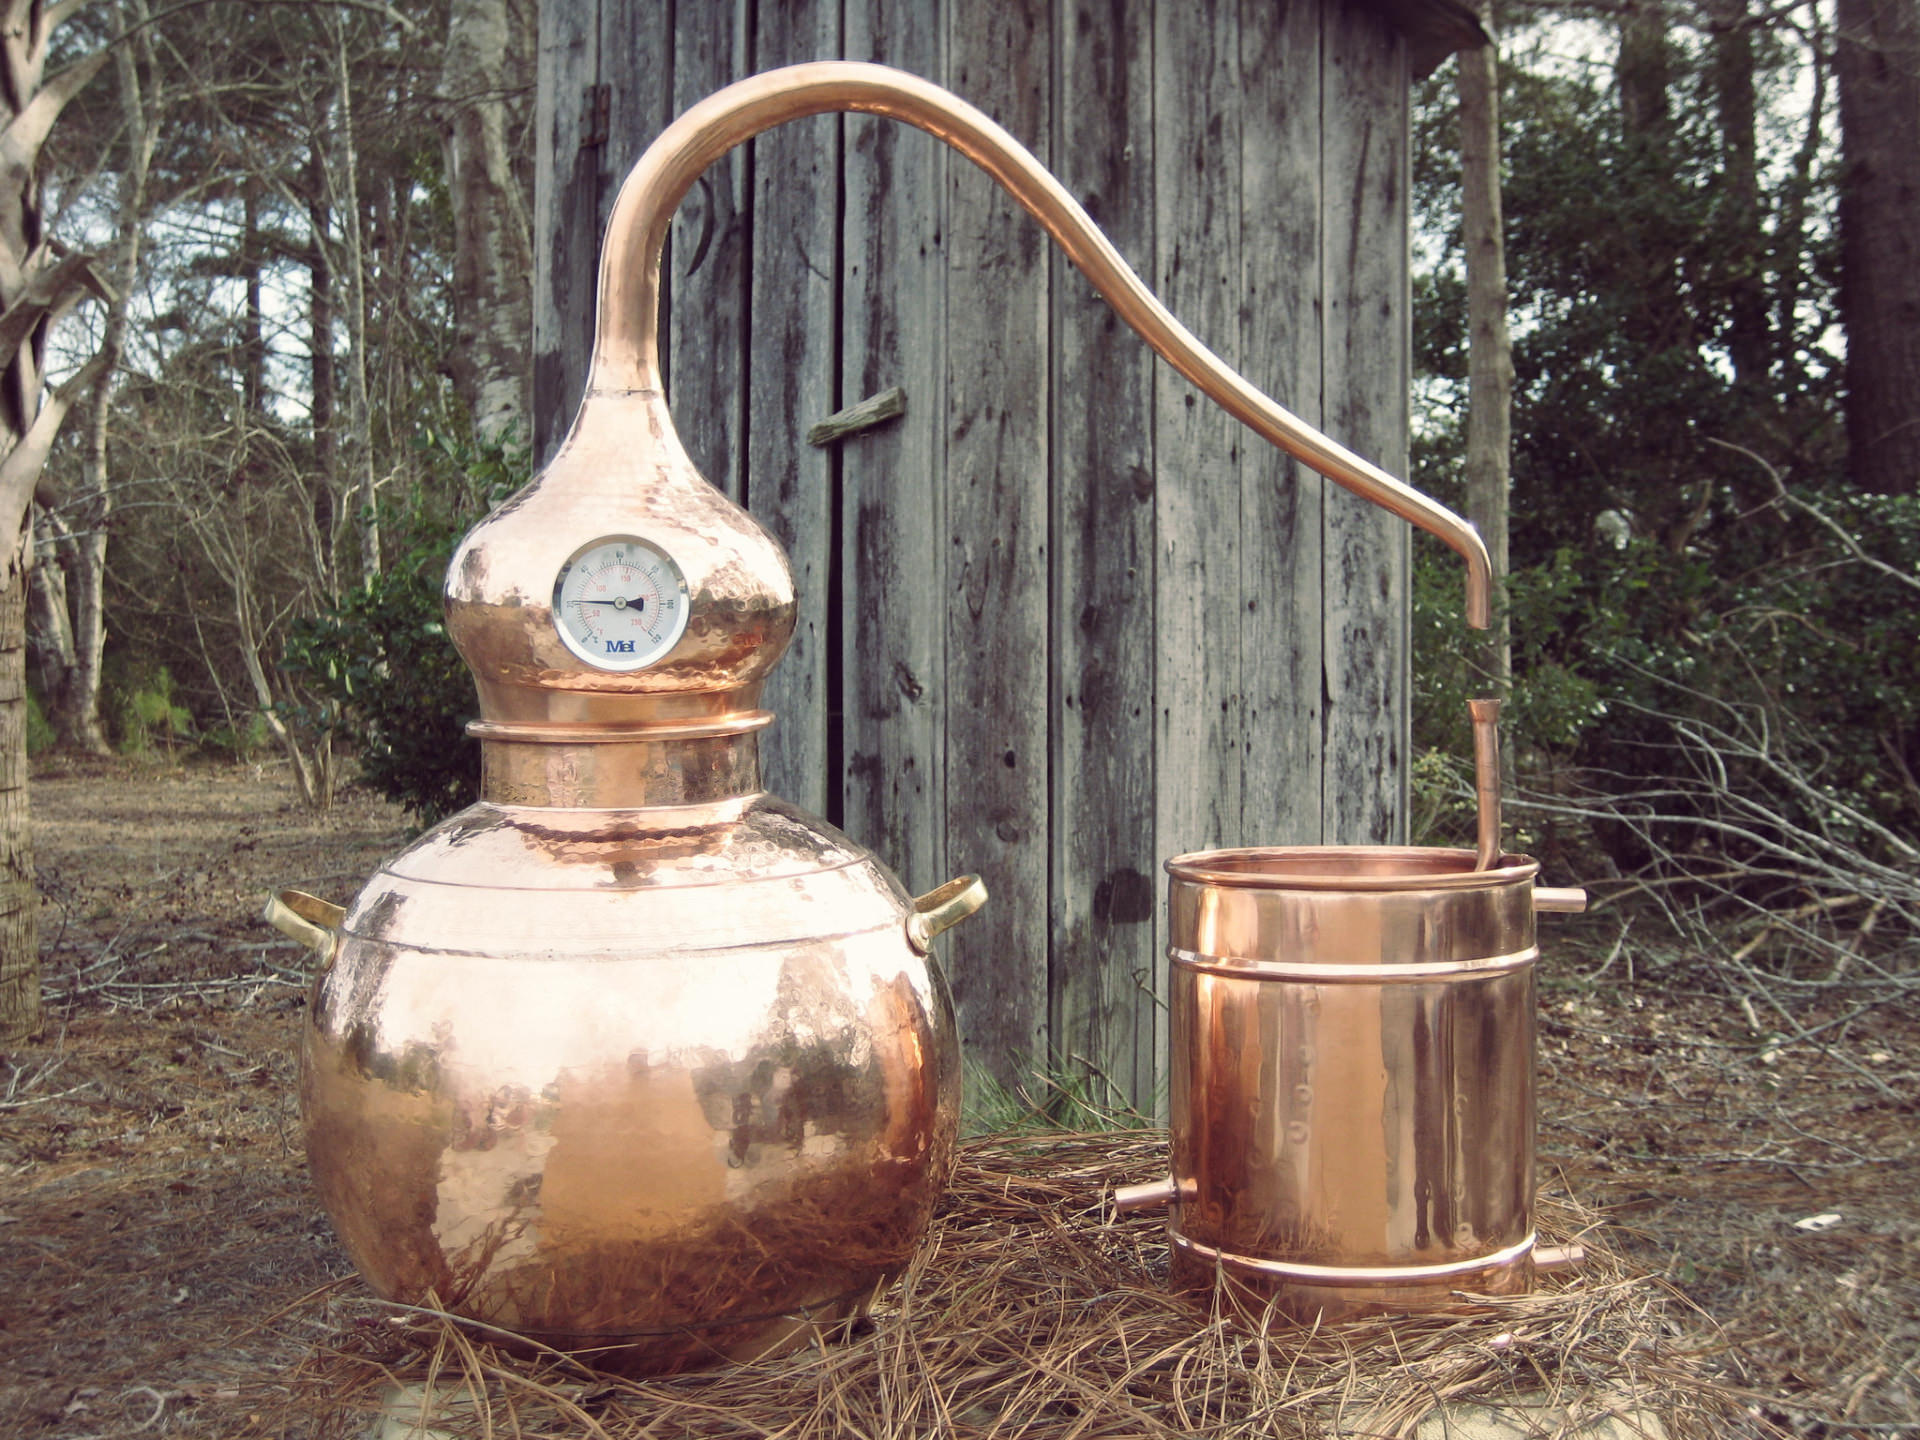 Home distilled spirits plant.